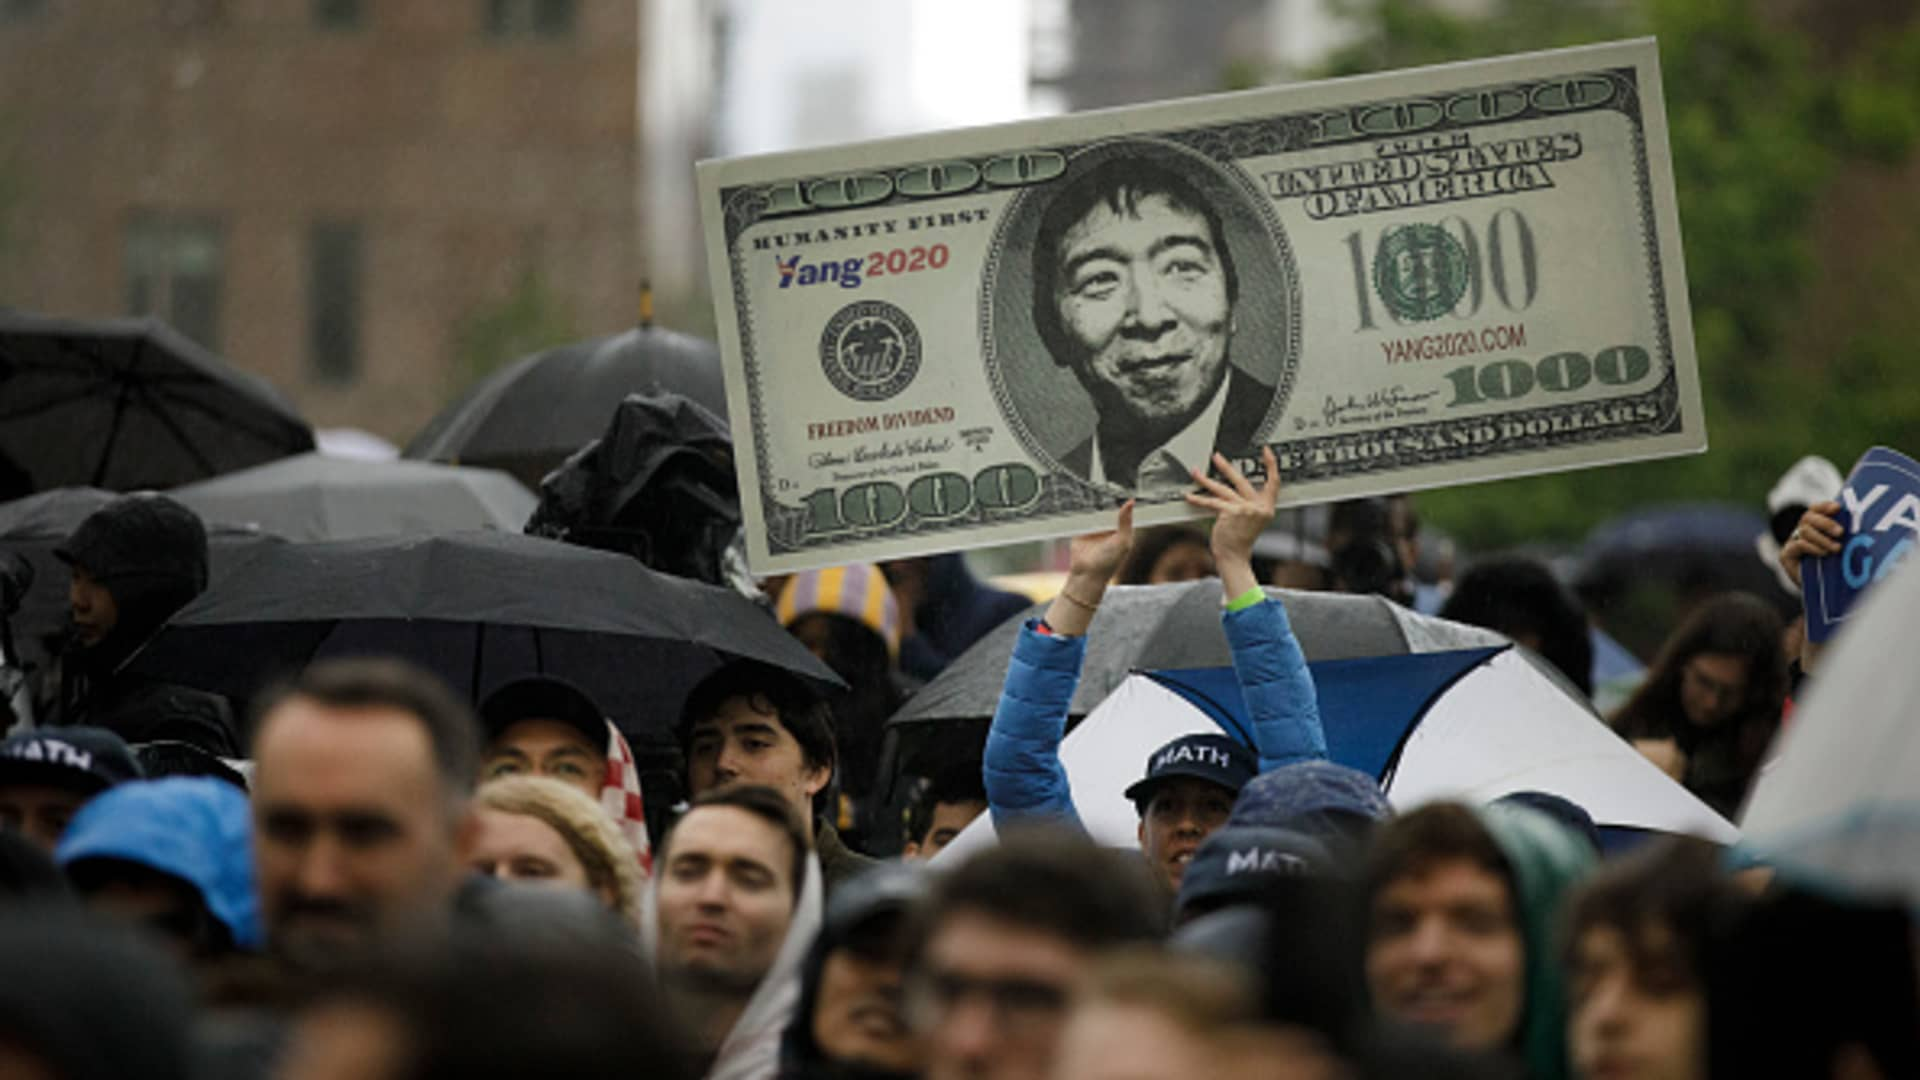 A sign supporting Democratic presidential candidate Andrew Yang's plan for a $1,000 monthly universal basic income at a May 14, 2019, rally in New York.